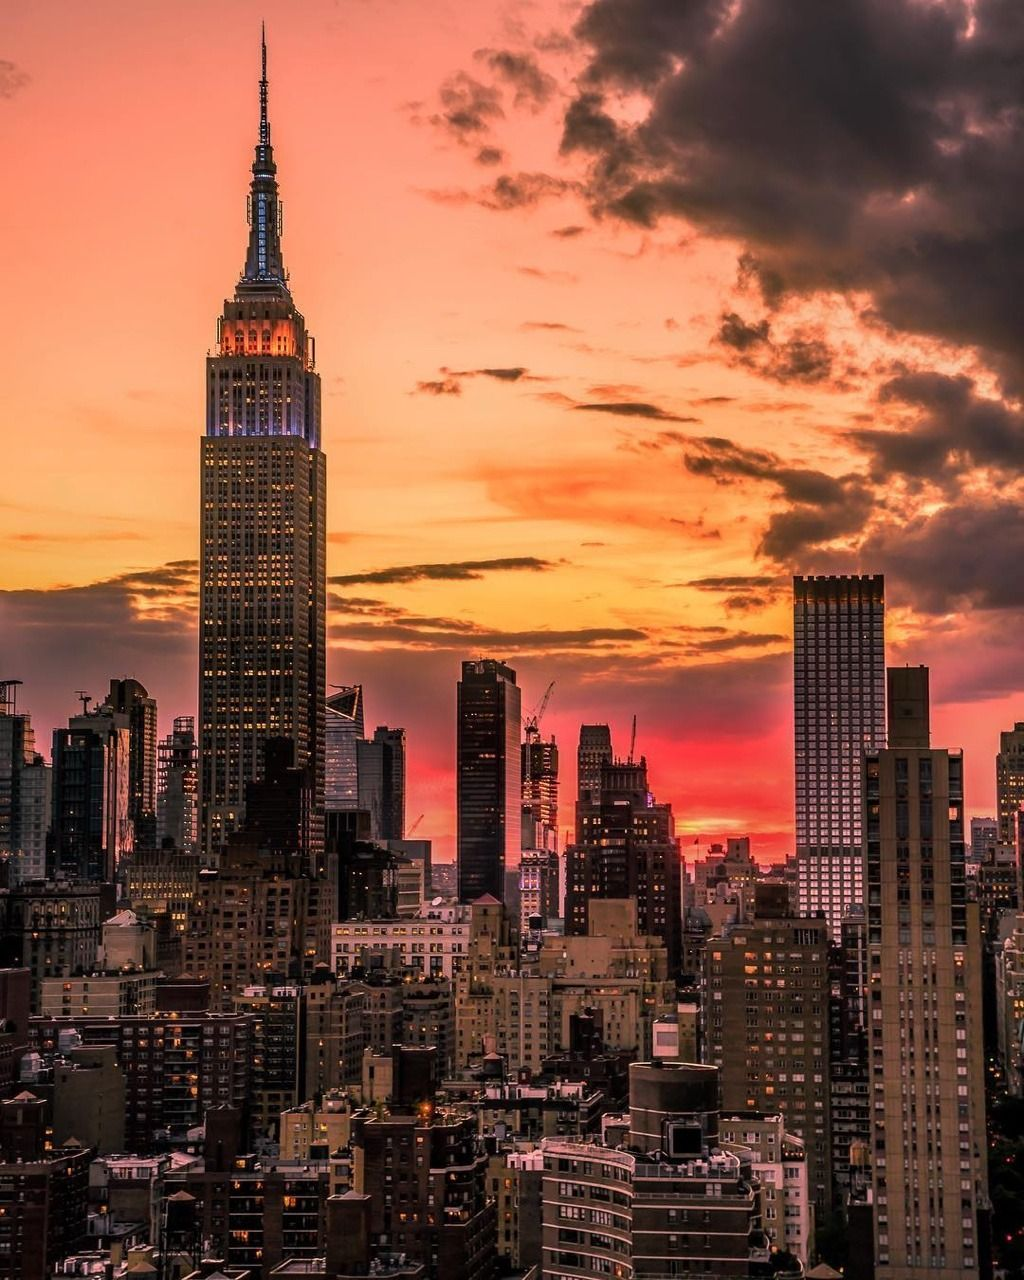 Empire State Building by brooklynveezy City Empire